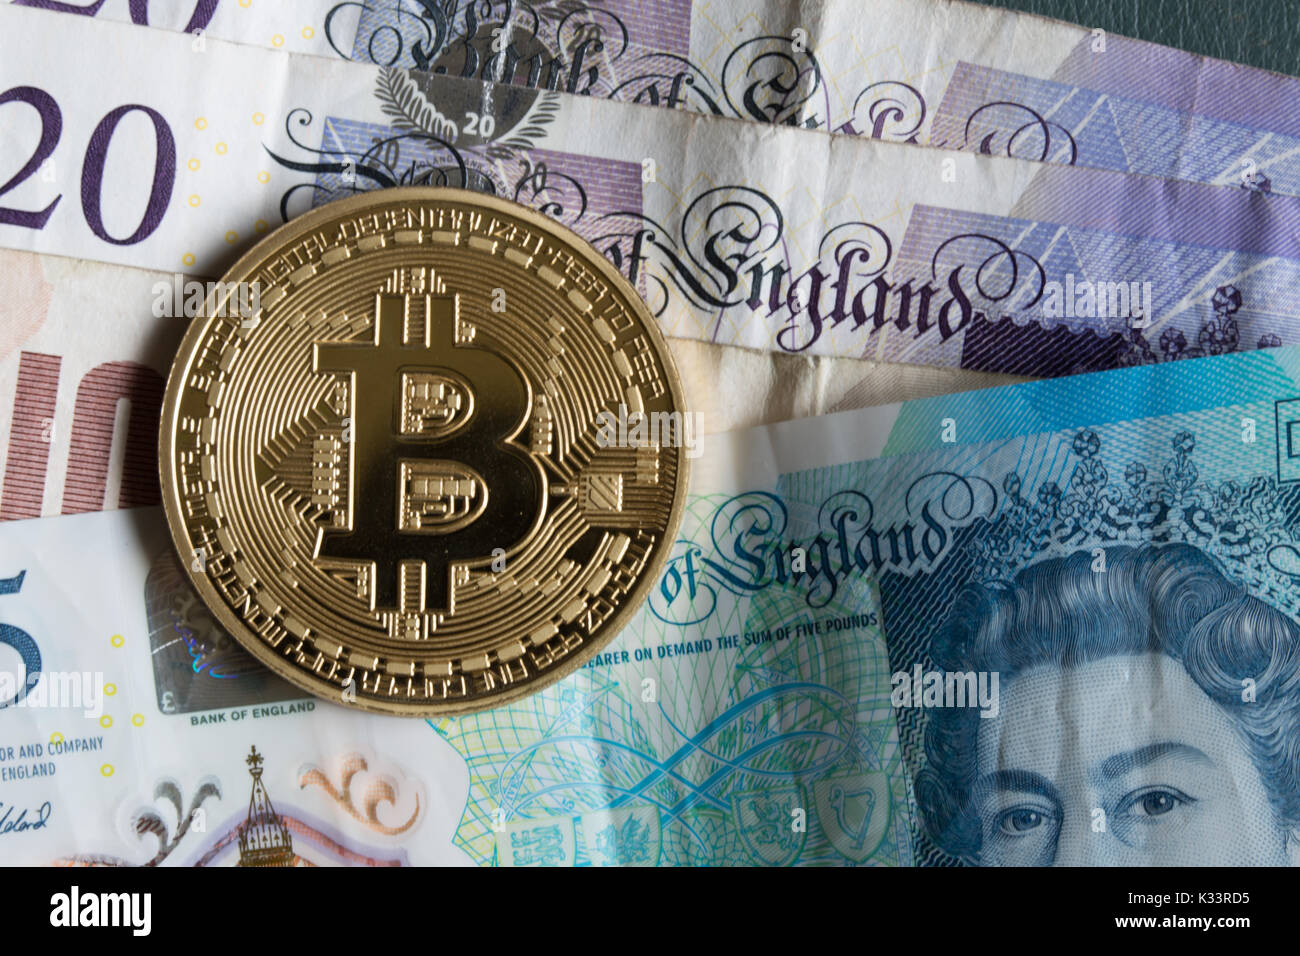 a-bitcoin-on-top-of-gb-sterling-notes-K3